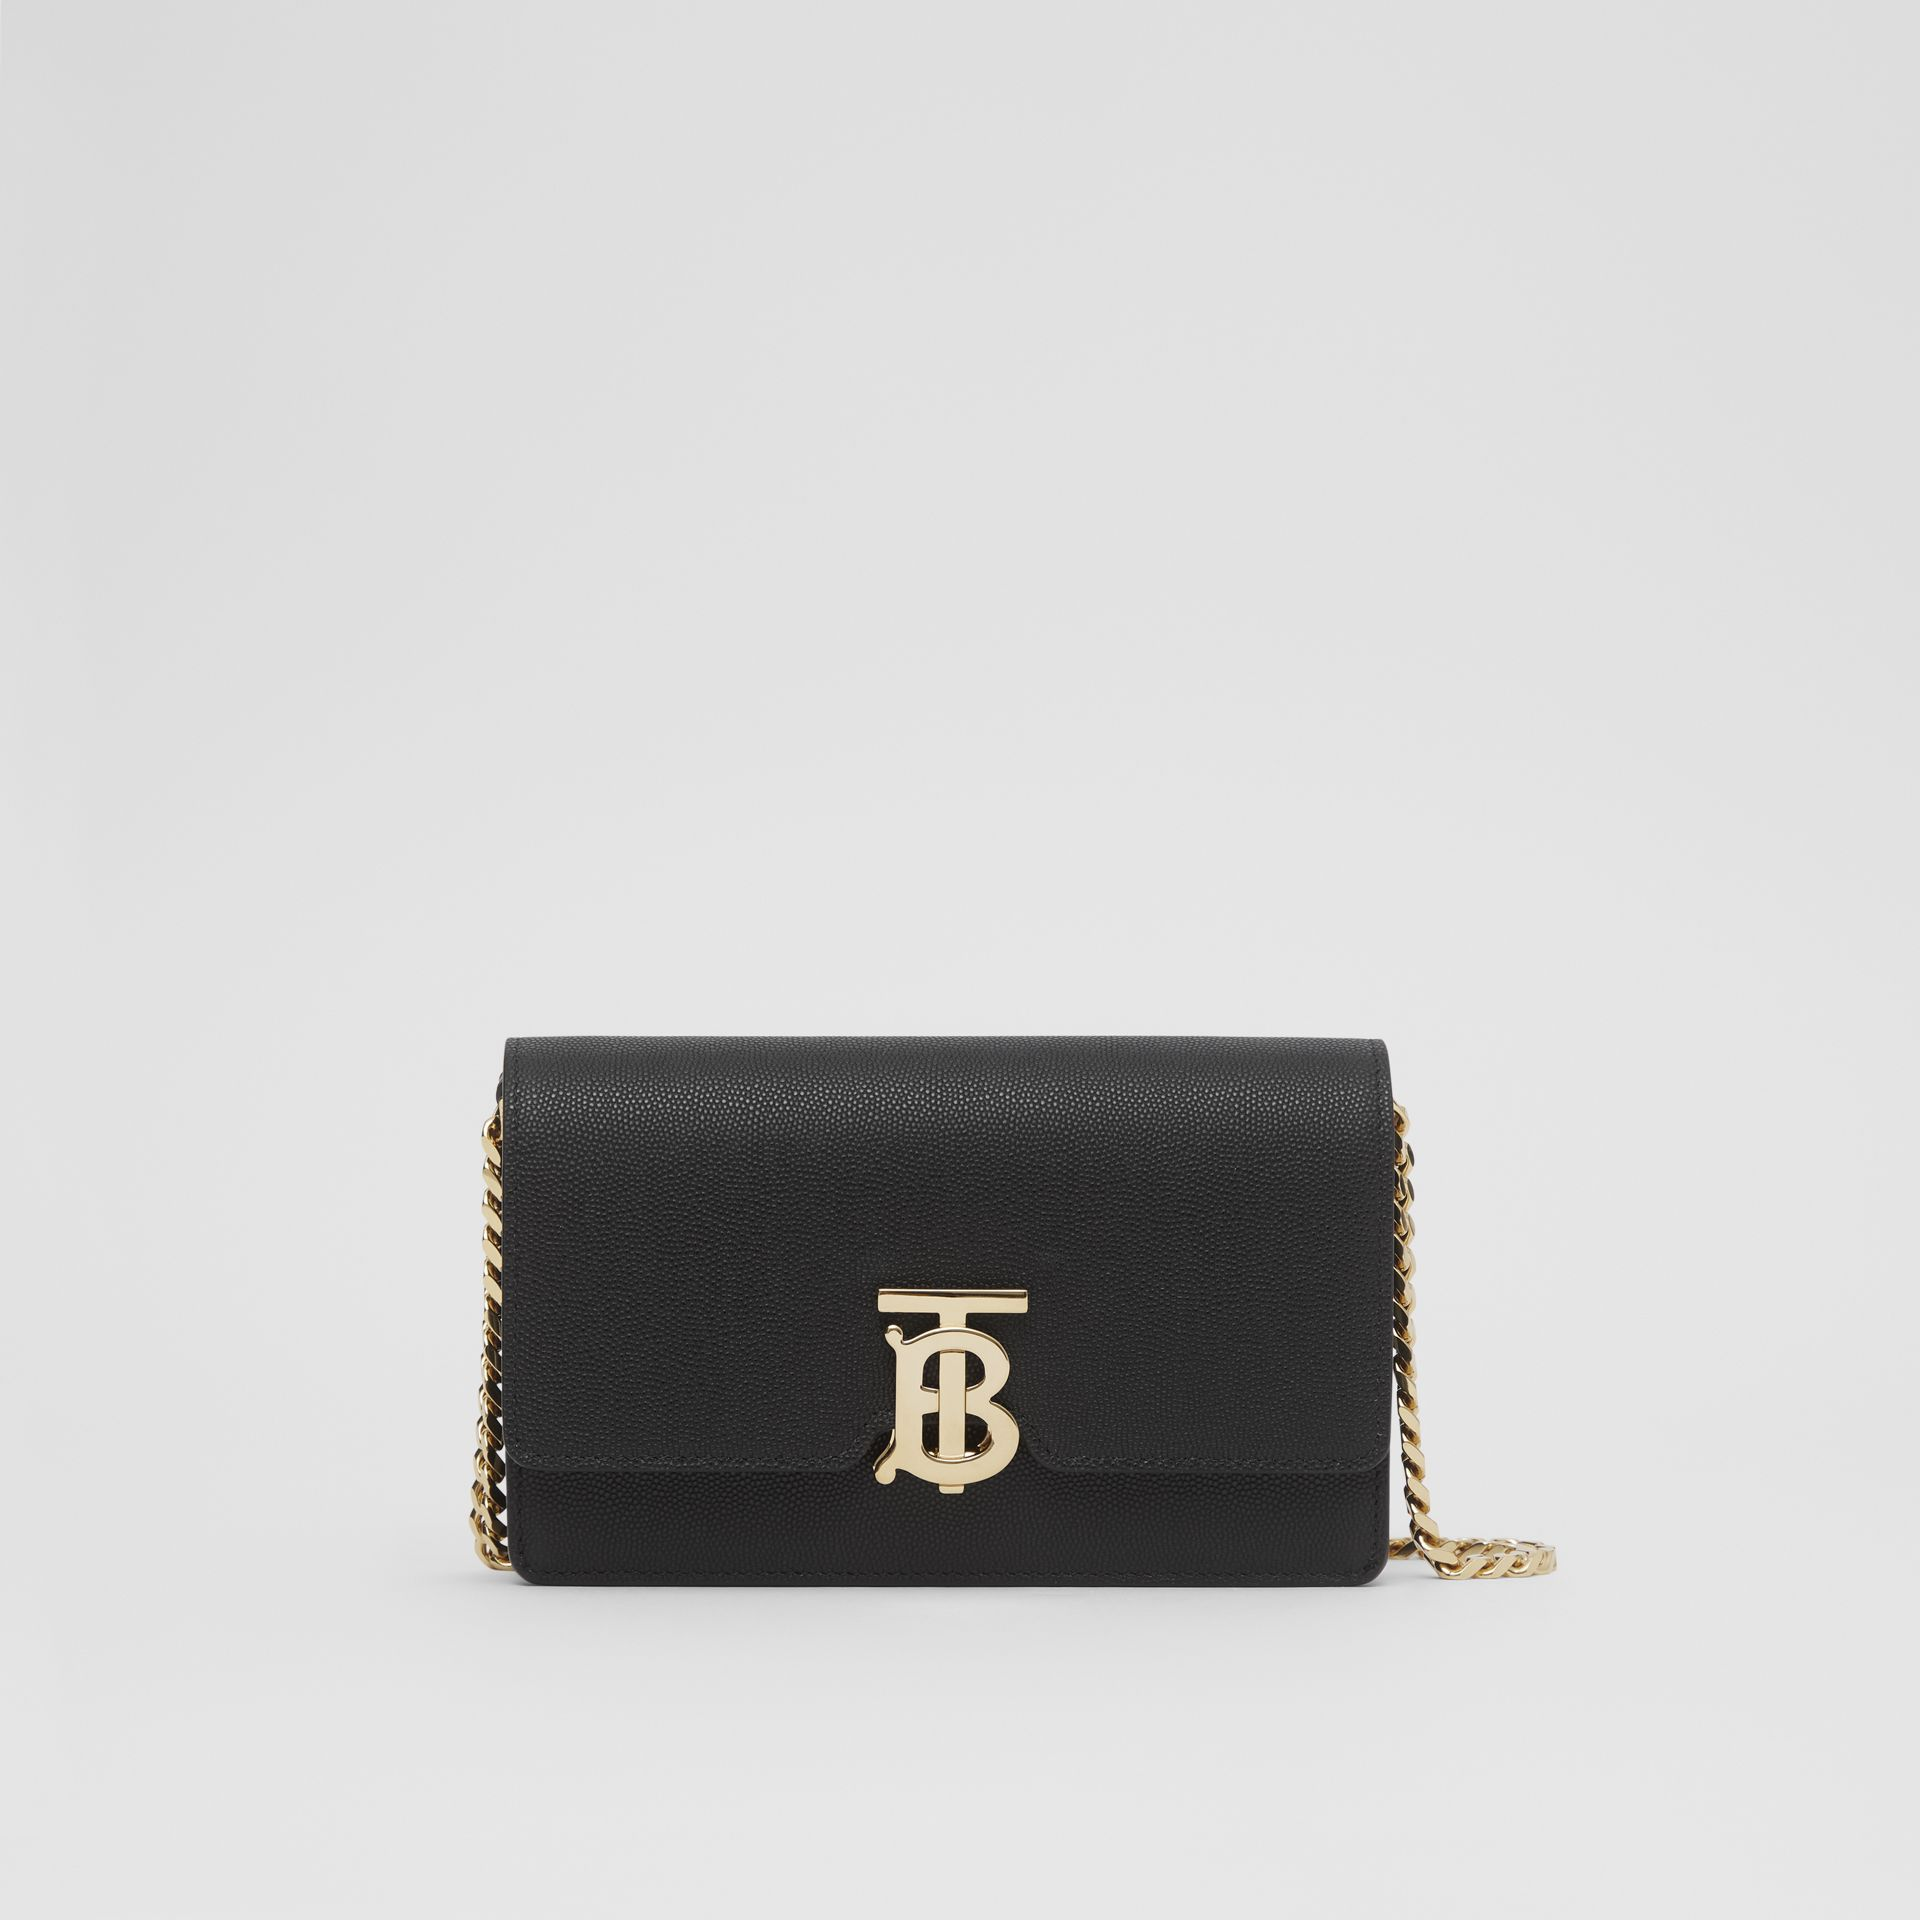 Small Grainy Leather Shoulder Bag in Black - Women | Burberry United Kingdom - gallery image 0